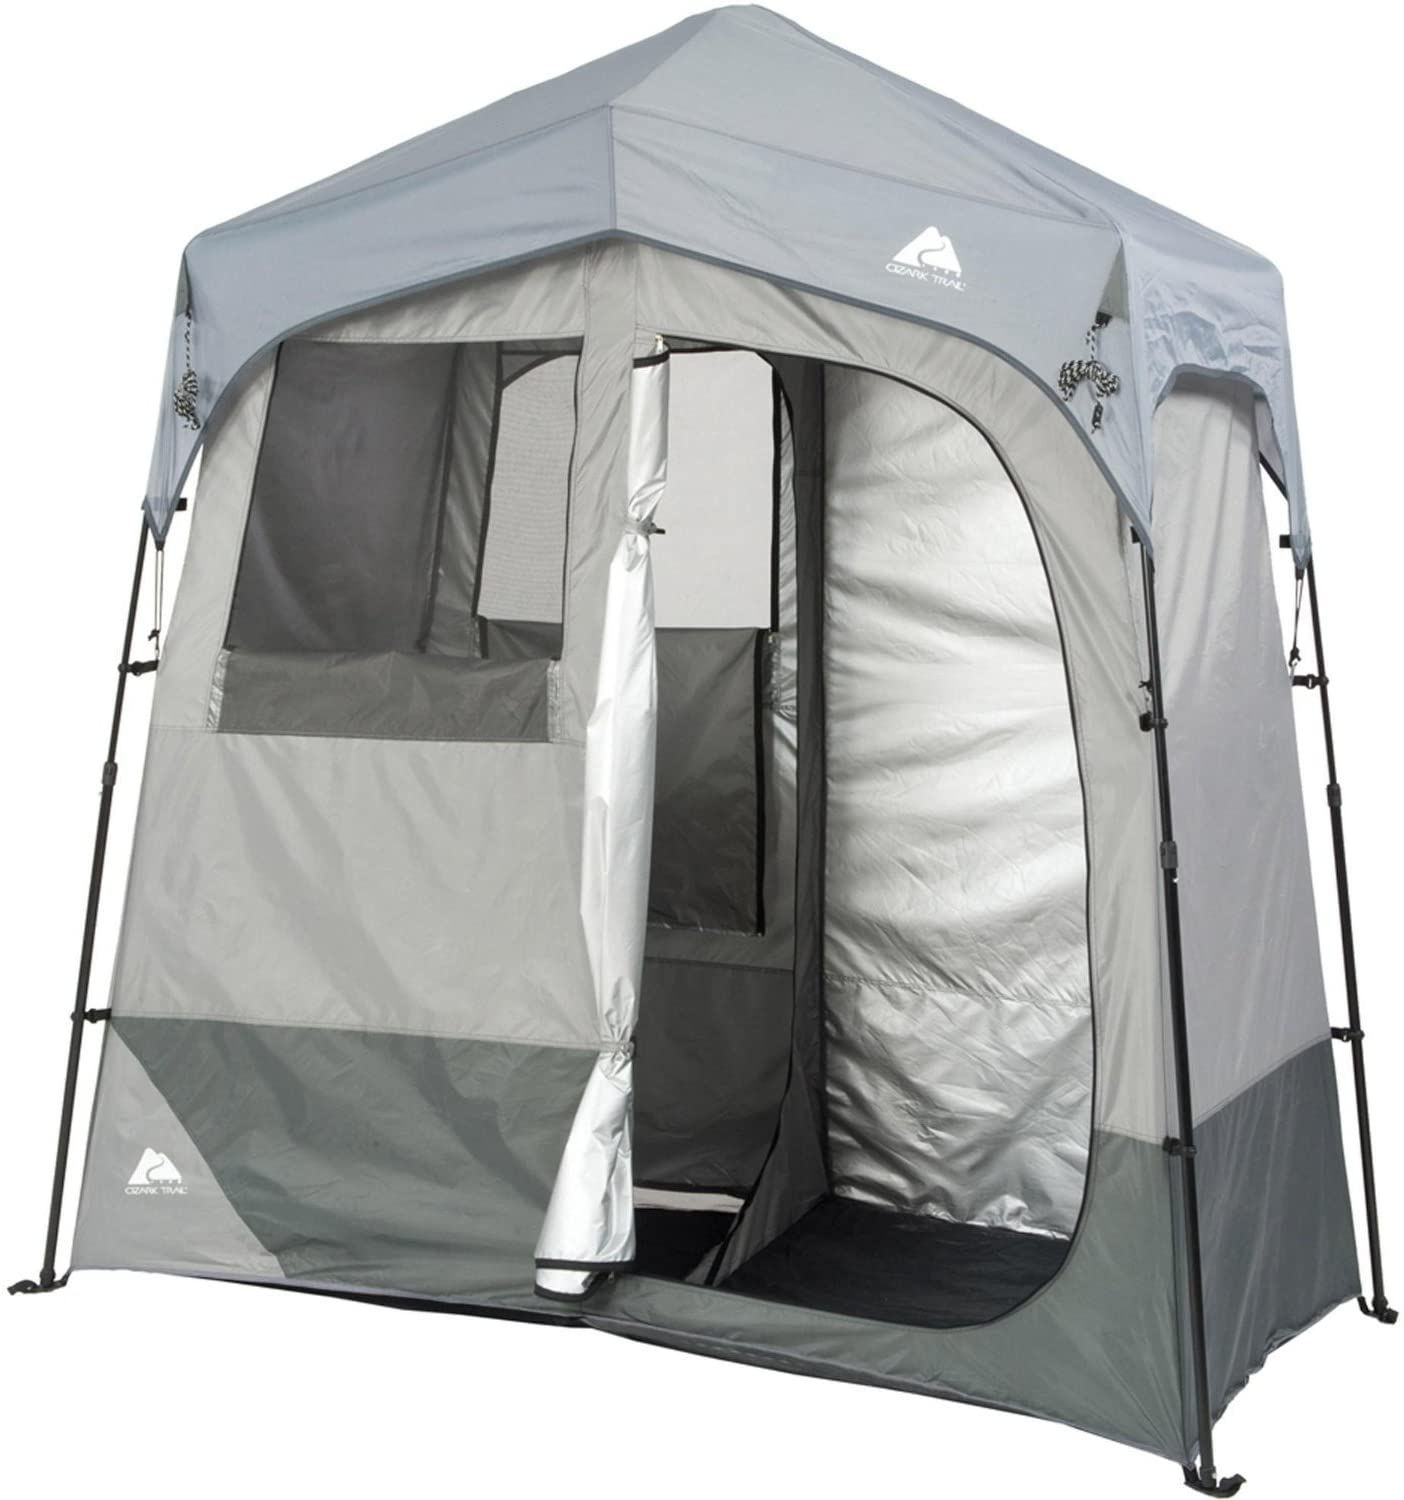 Best Ozark Trail Tents For The Money In 2021 Reviews 24